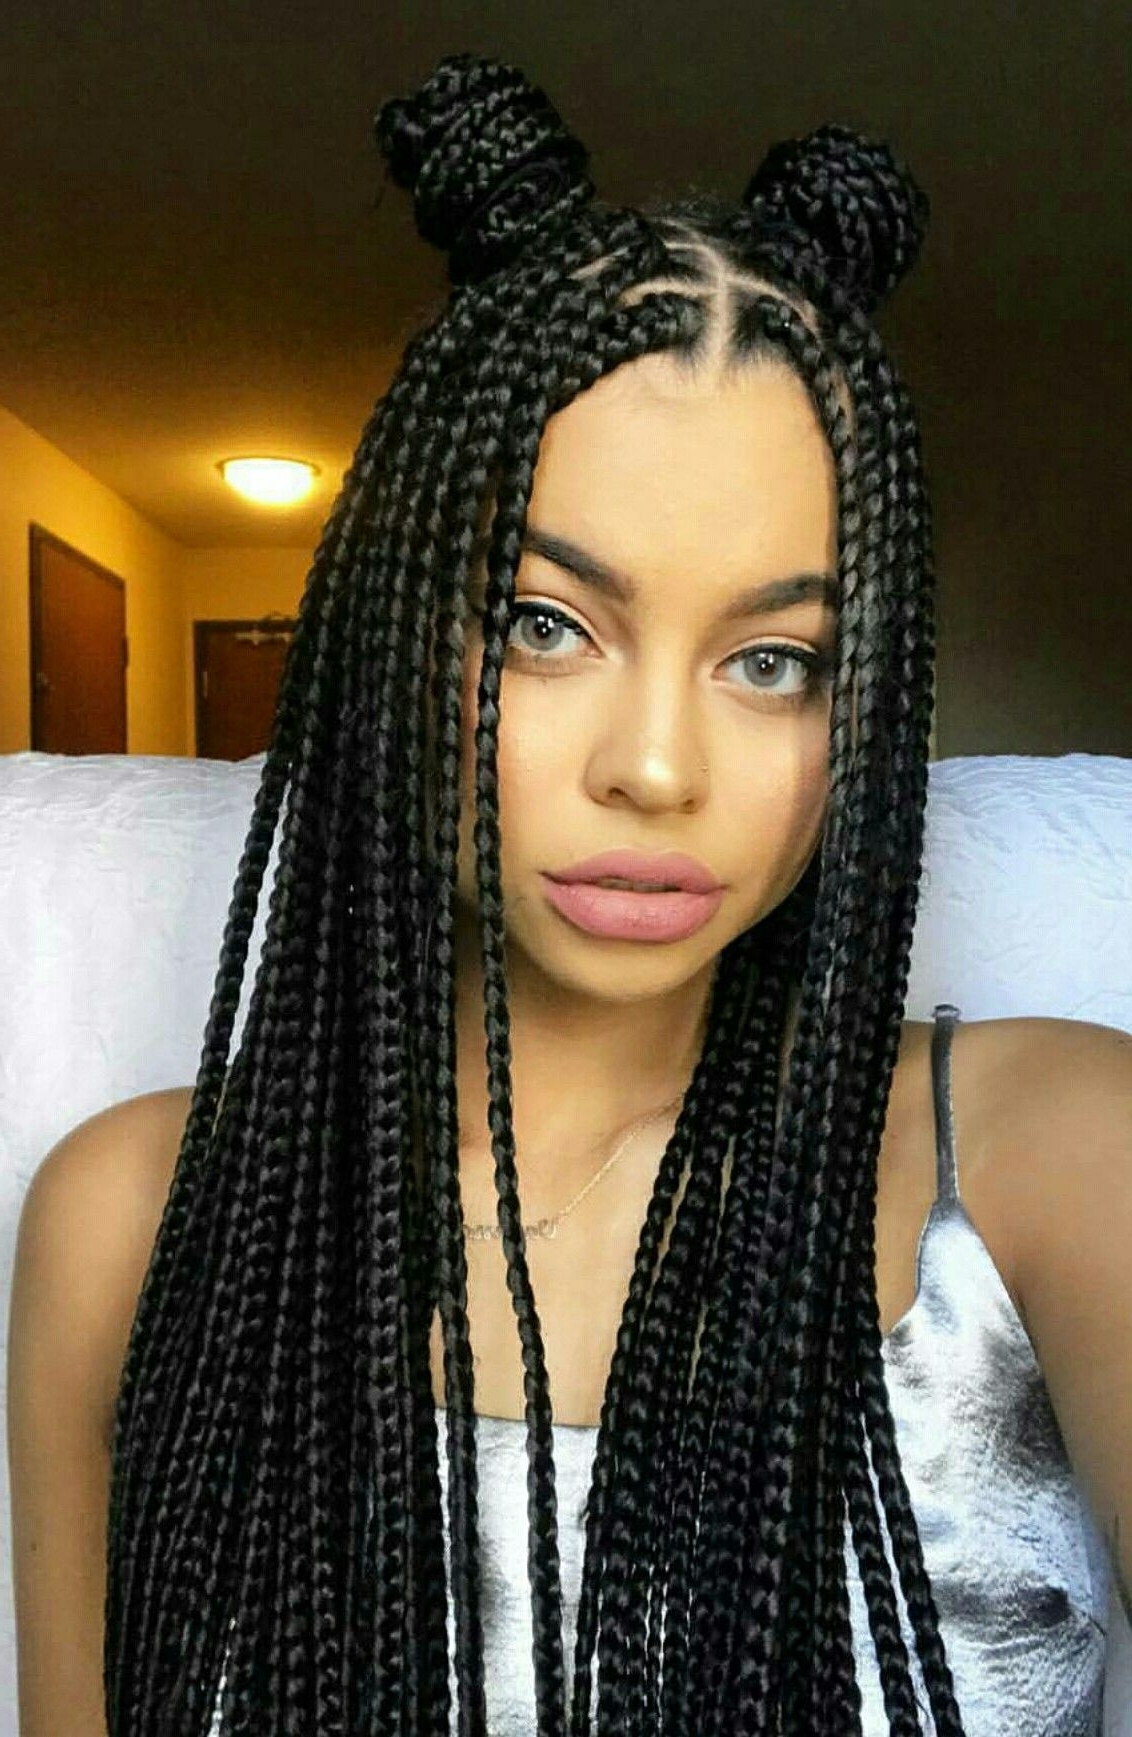 Well Known Braided Hairstyles For Black Woman Intended For Quick And Easy Braided Hairstyles For African American Hair Black (View 14 of 15)